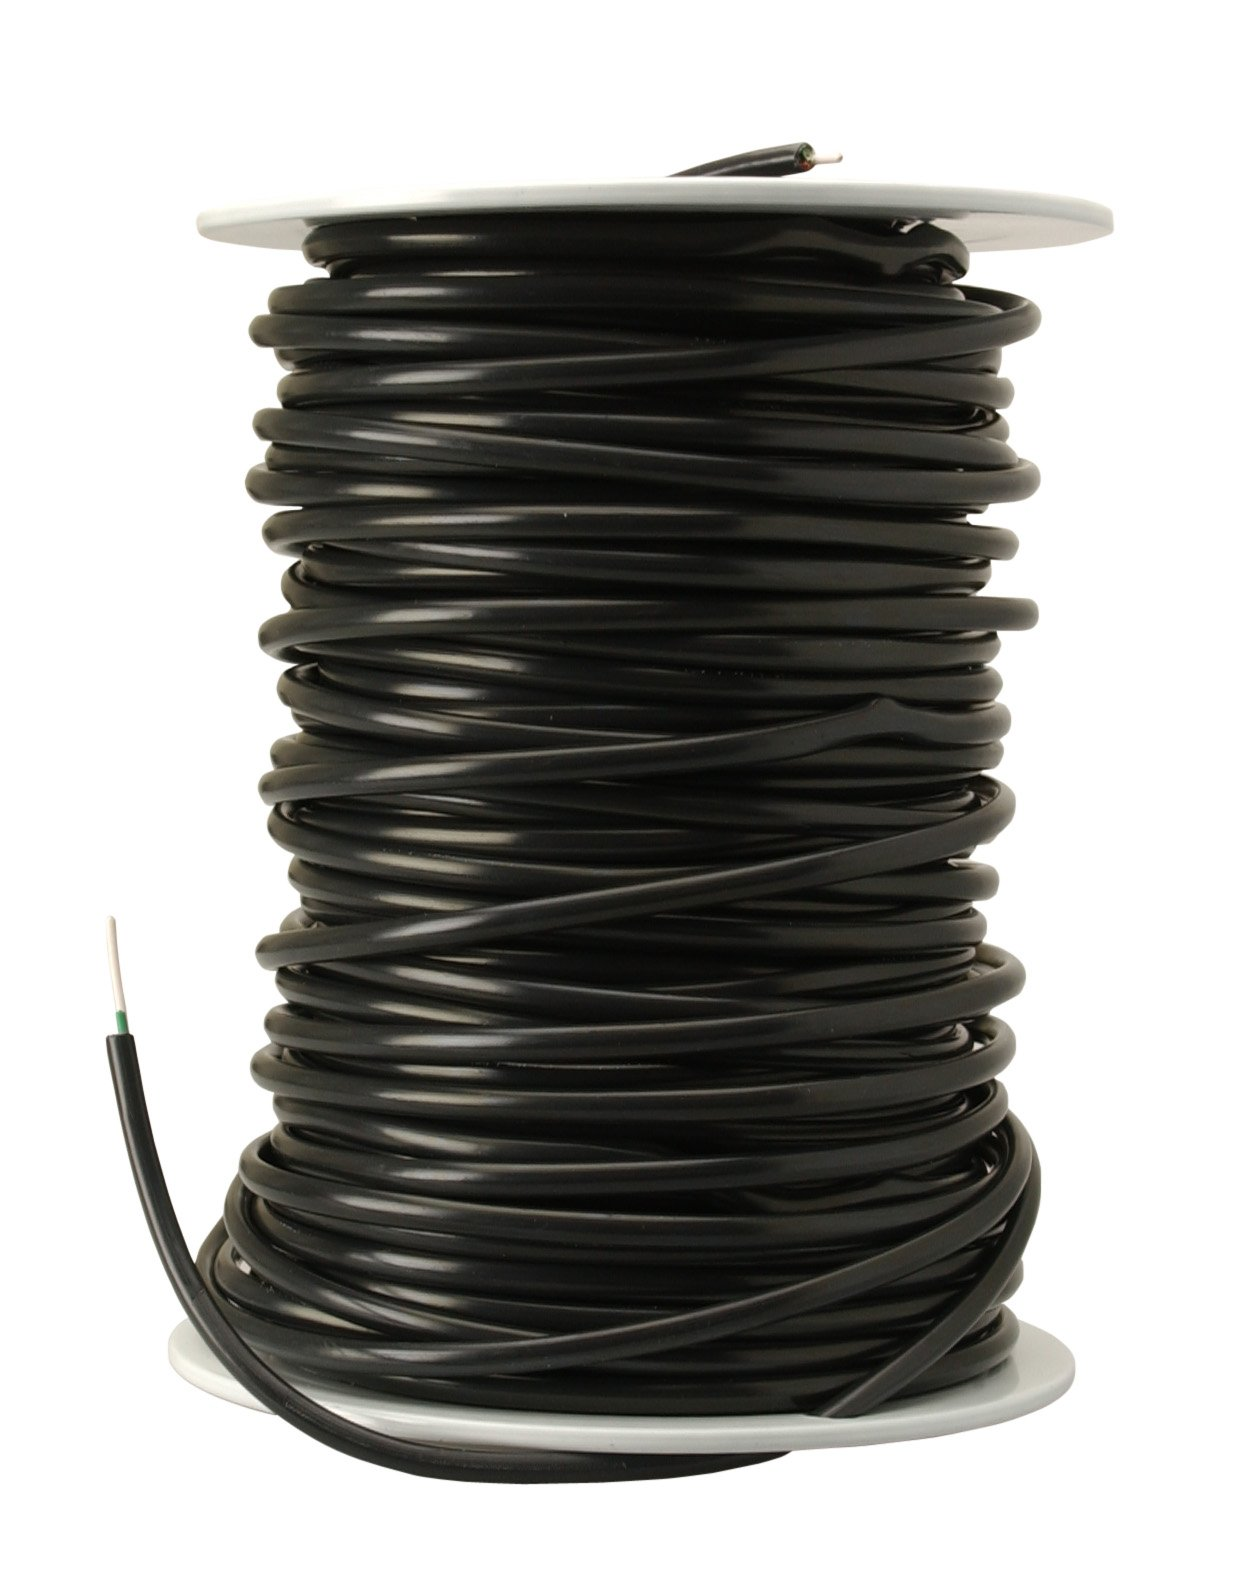 Cheap Wire Underground Find Deals On Line At Pipe Buy Flex Wireunderground Electrical Get Quotations Southwire 54706 Solid Sprinkler System 18 Gauge 6 Conductor 30